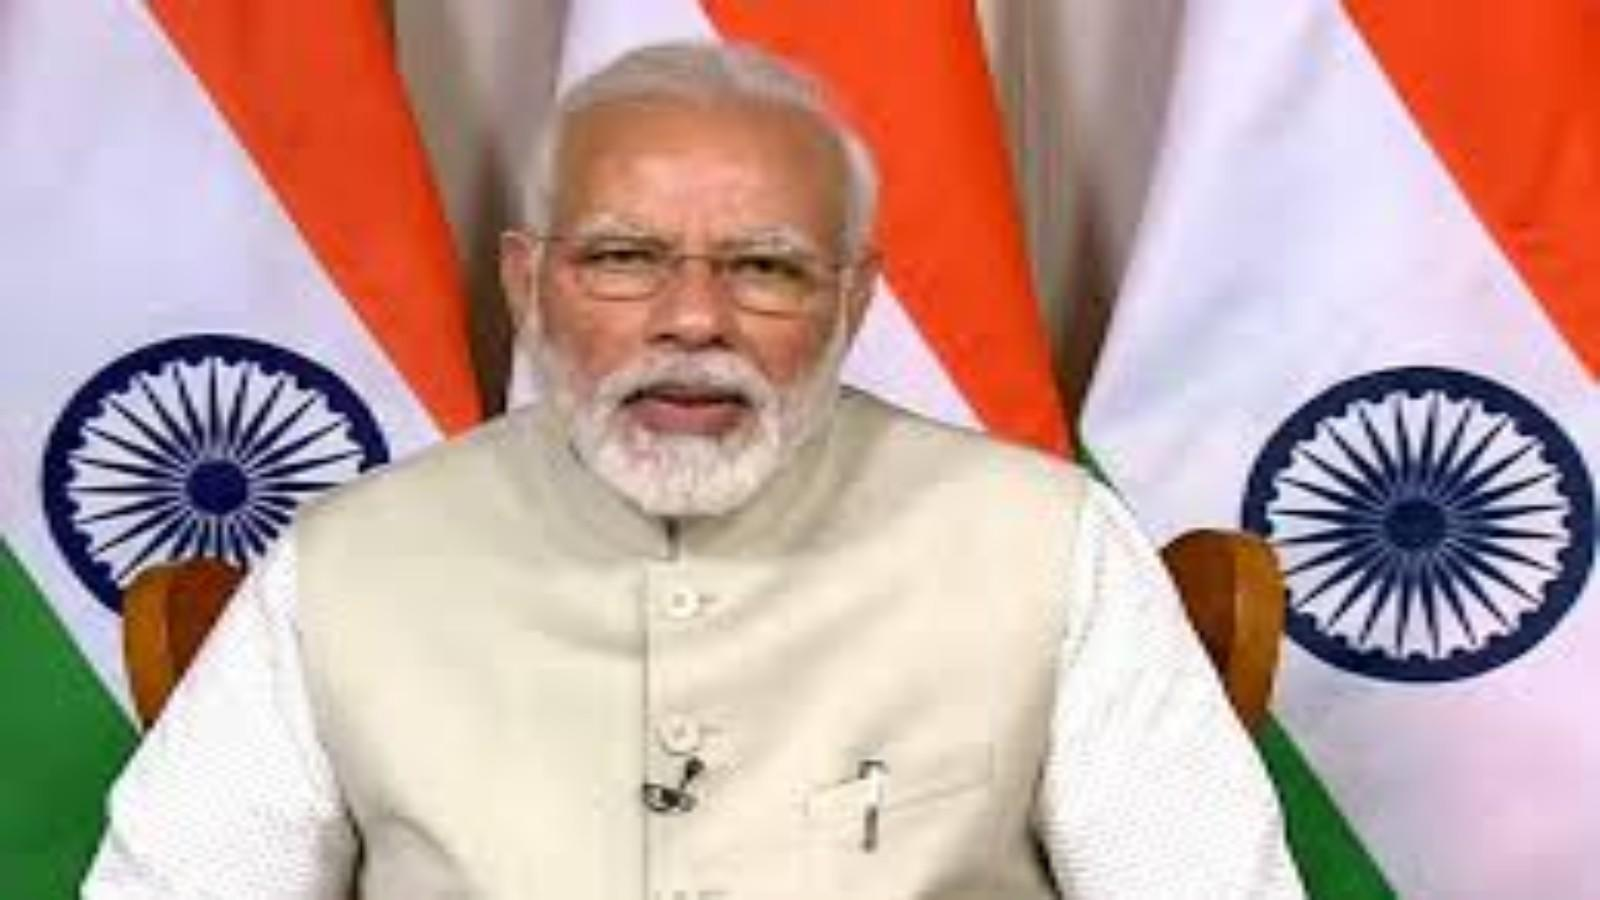 pm-modi-addresses-nation-for-65th-mann-ki-baat